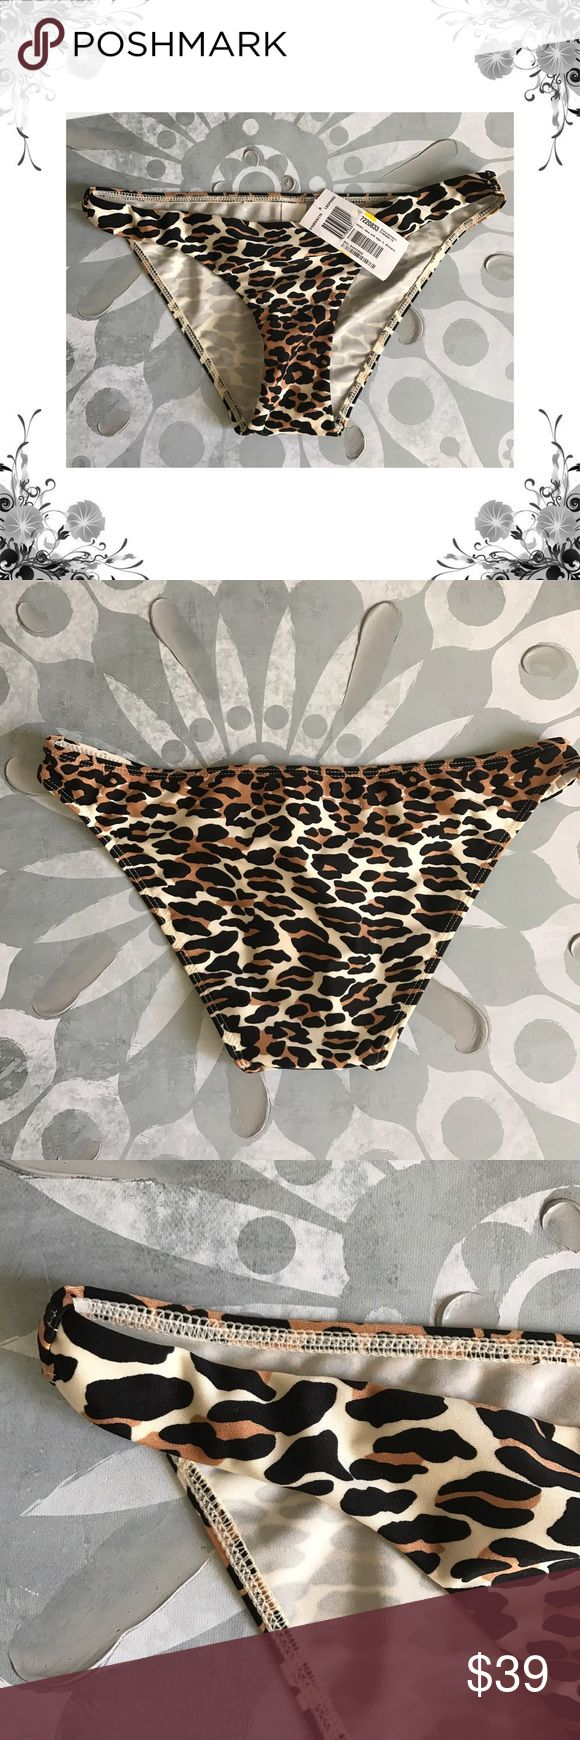 Zimmermann Animal Print Bikini Bottom Bottom only. Manufacturer Color is Leopard. Material is 80% Polyester/20% Elastane. Low-rise. Full seat coverage. Bundle for discounts! Thank you for shopping my closet! Zimmermann Swim Bikinis